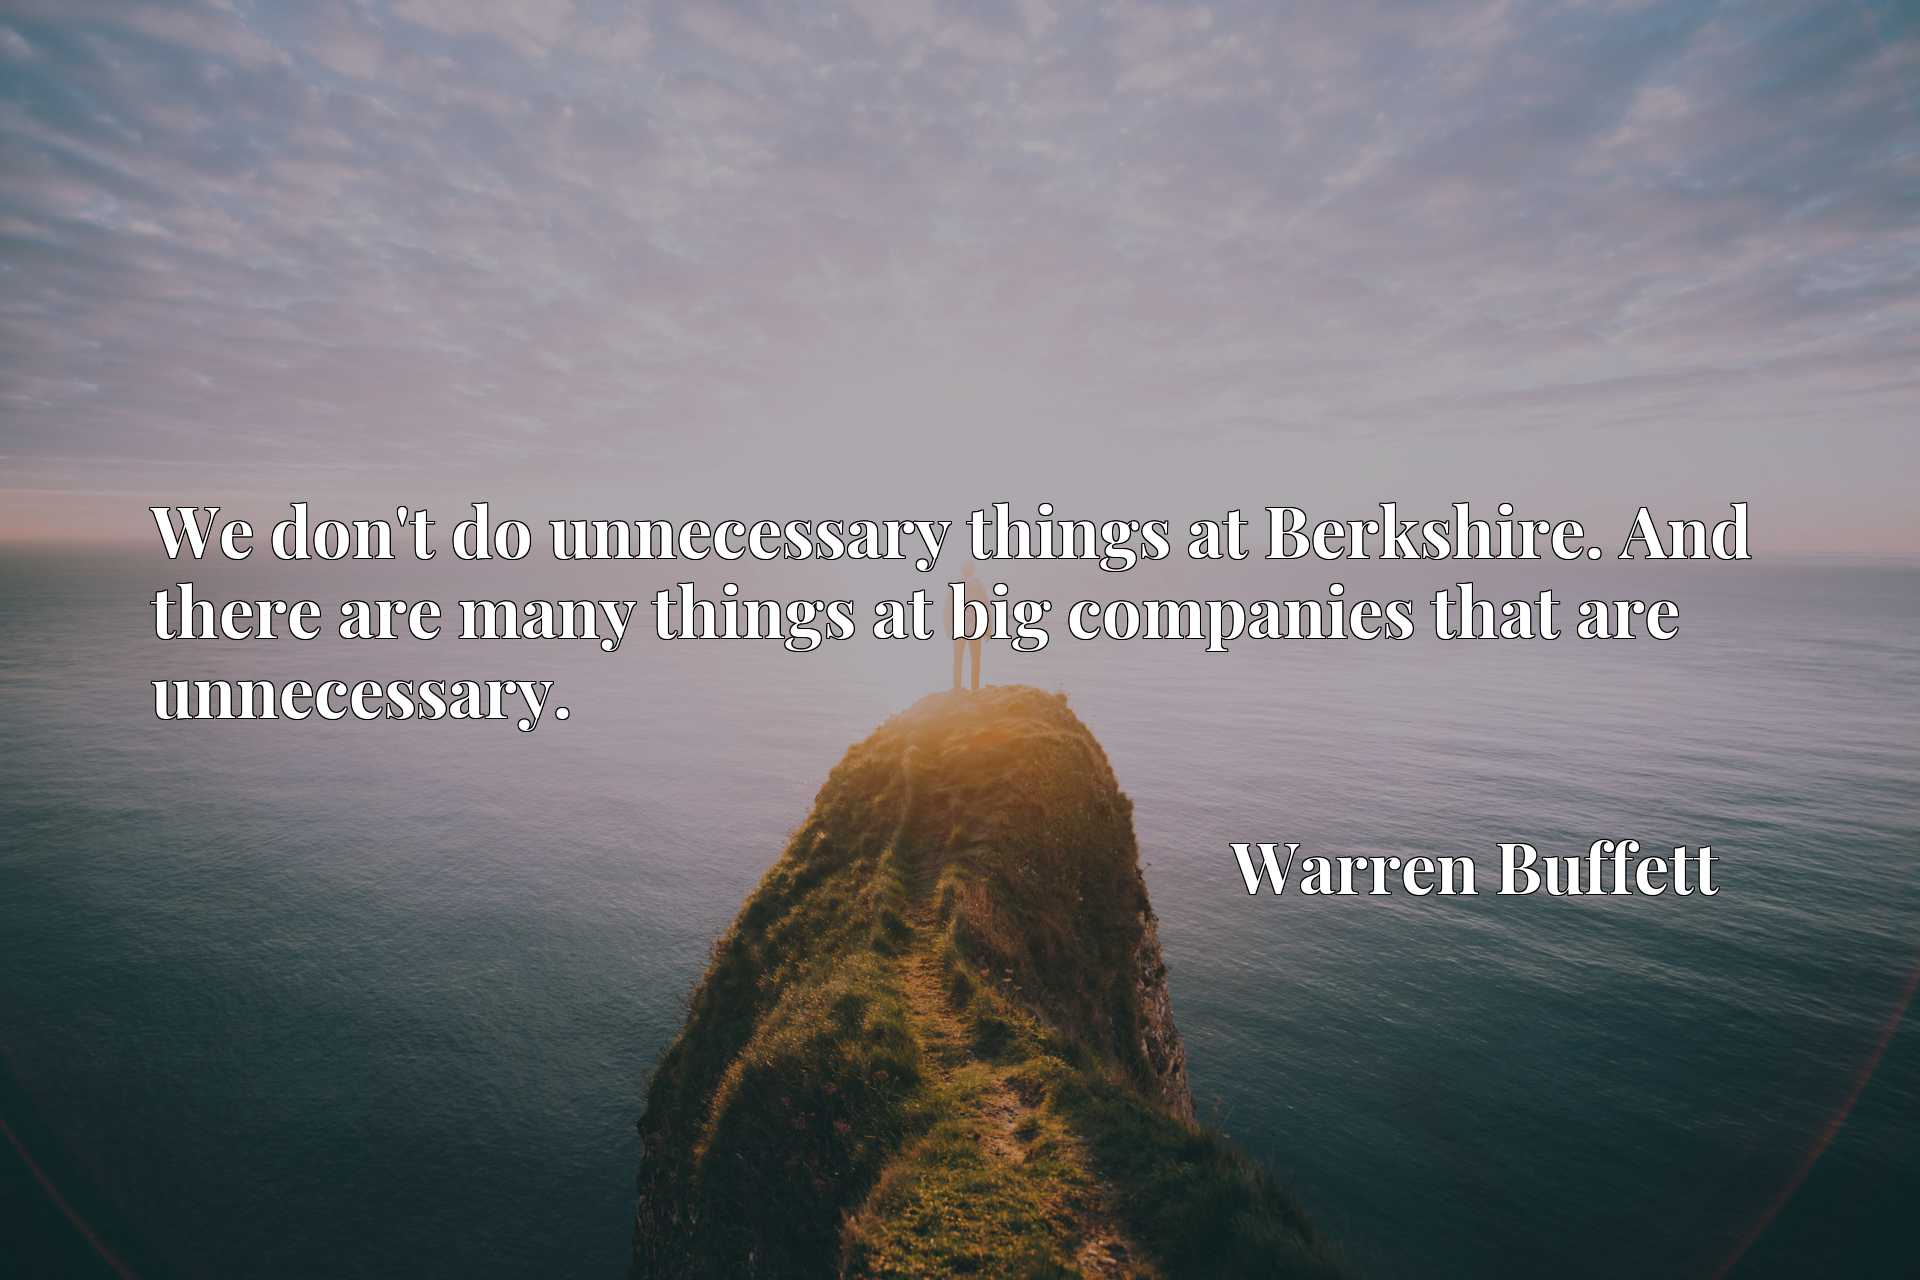 We don't do unnecessary things at Berkshire. And there are many things at big companies that are unnecessary.